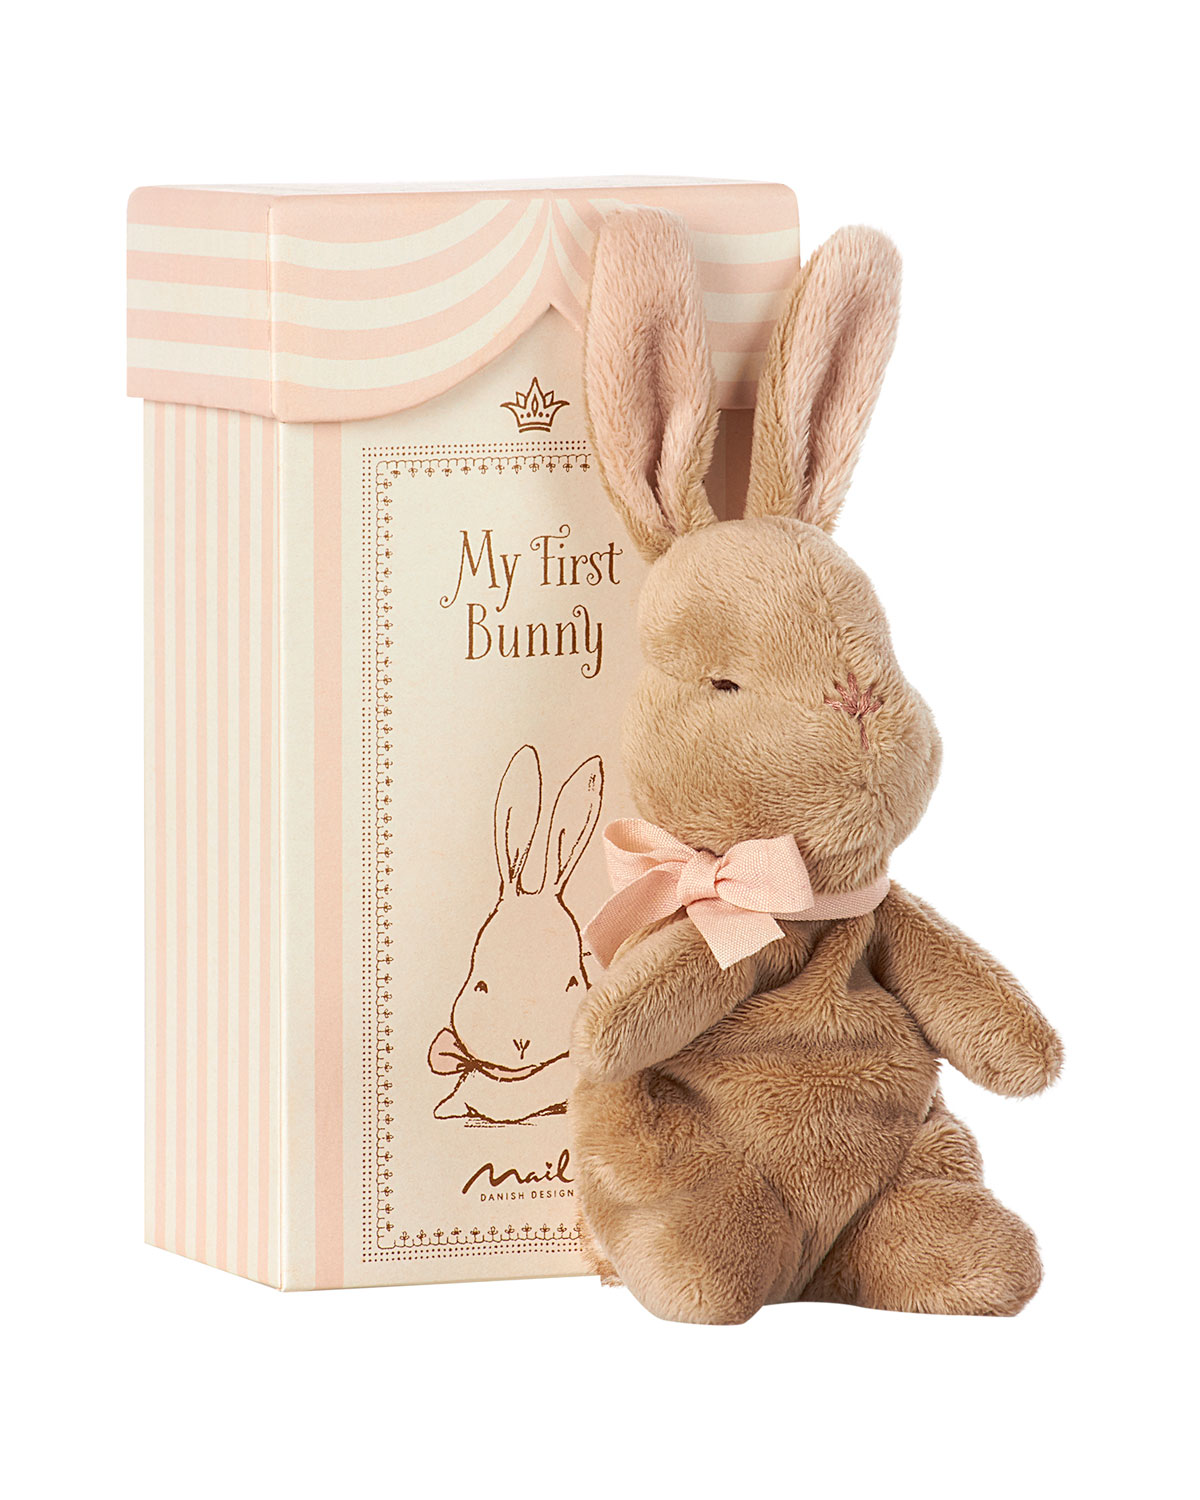 My First Bunny Stuffed Toy in Box